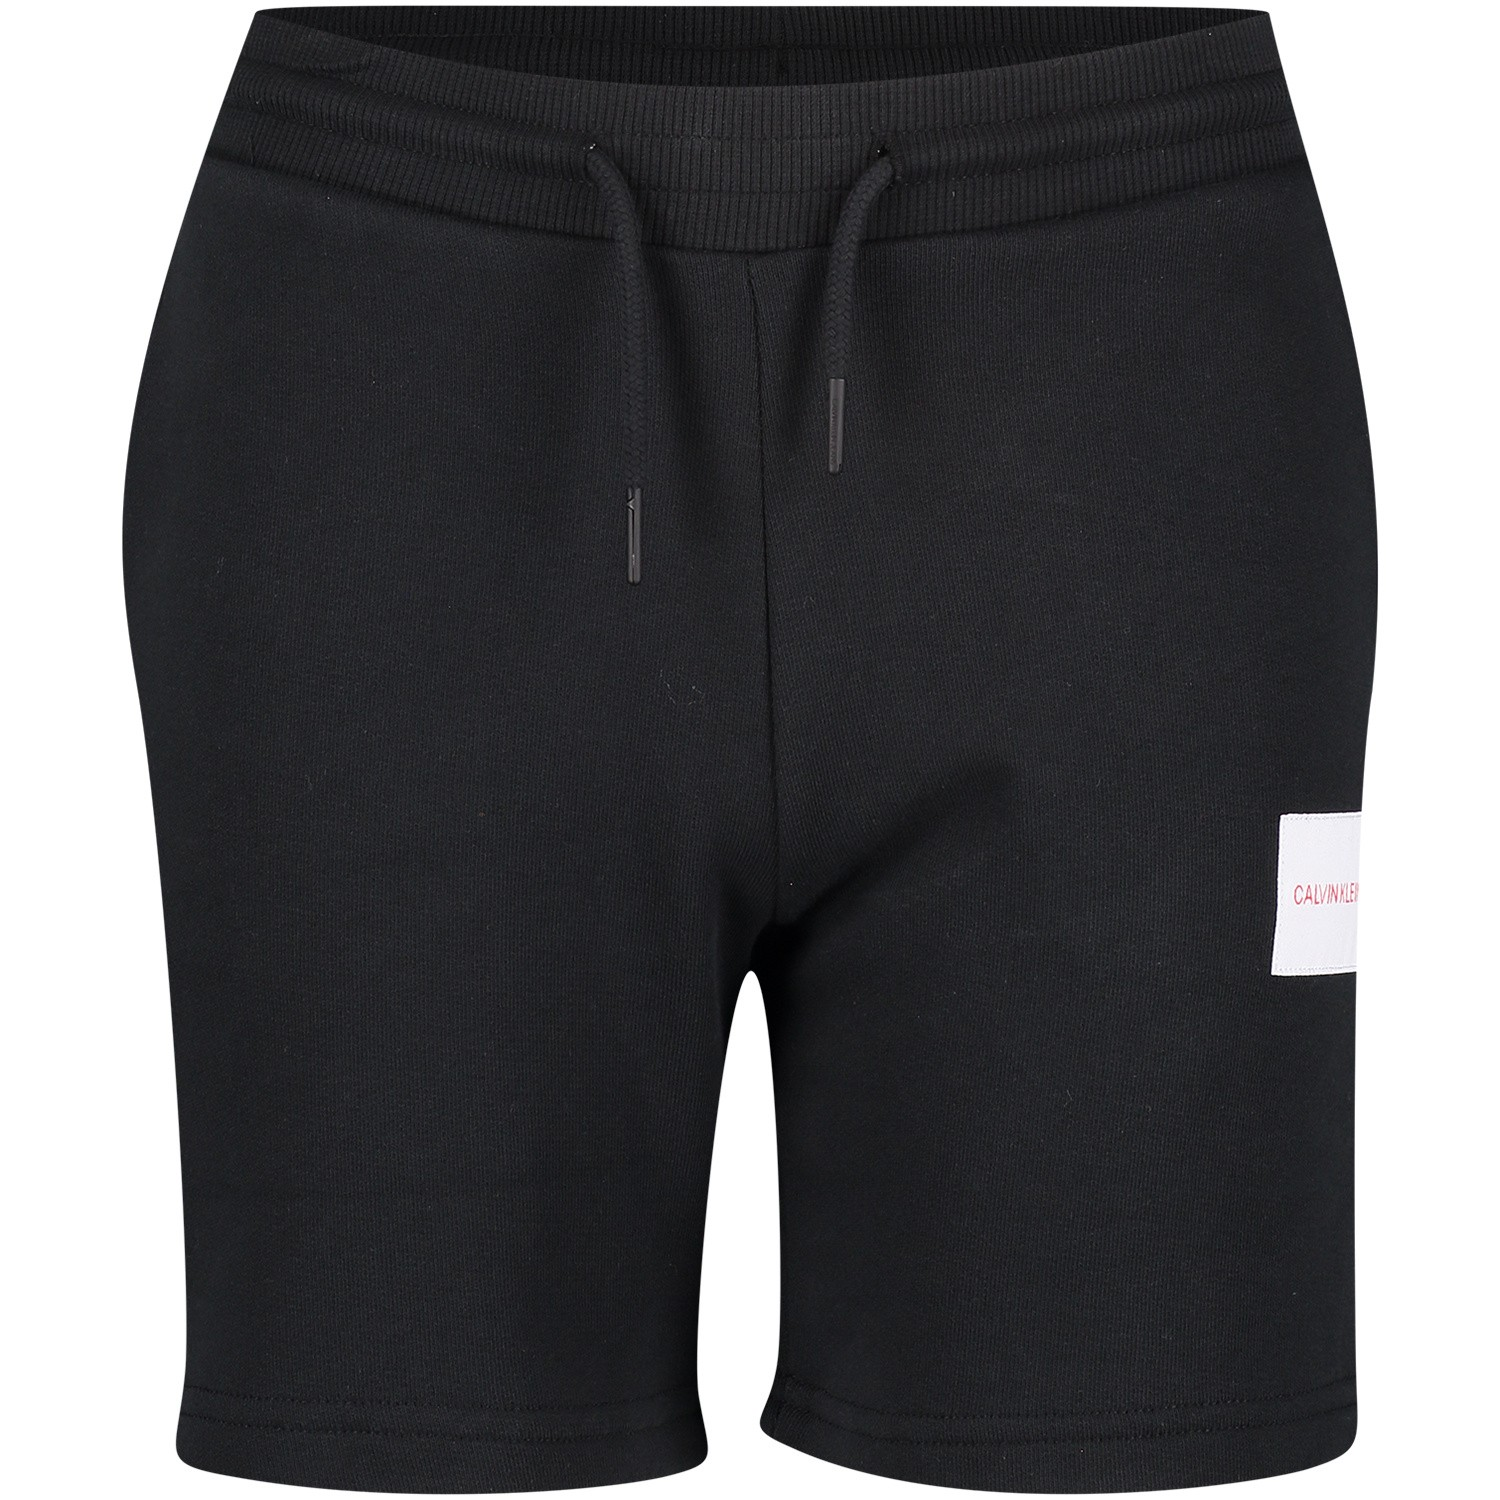 Picture of Calvin Klein IB0IB00105 kids shorts black